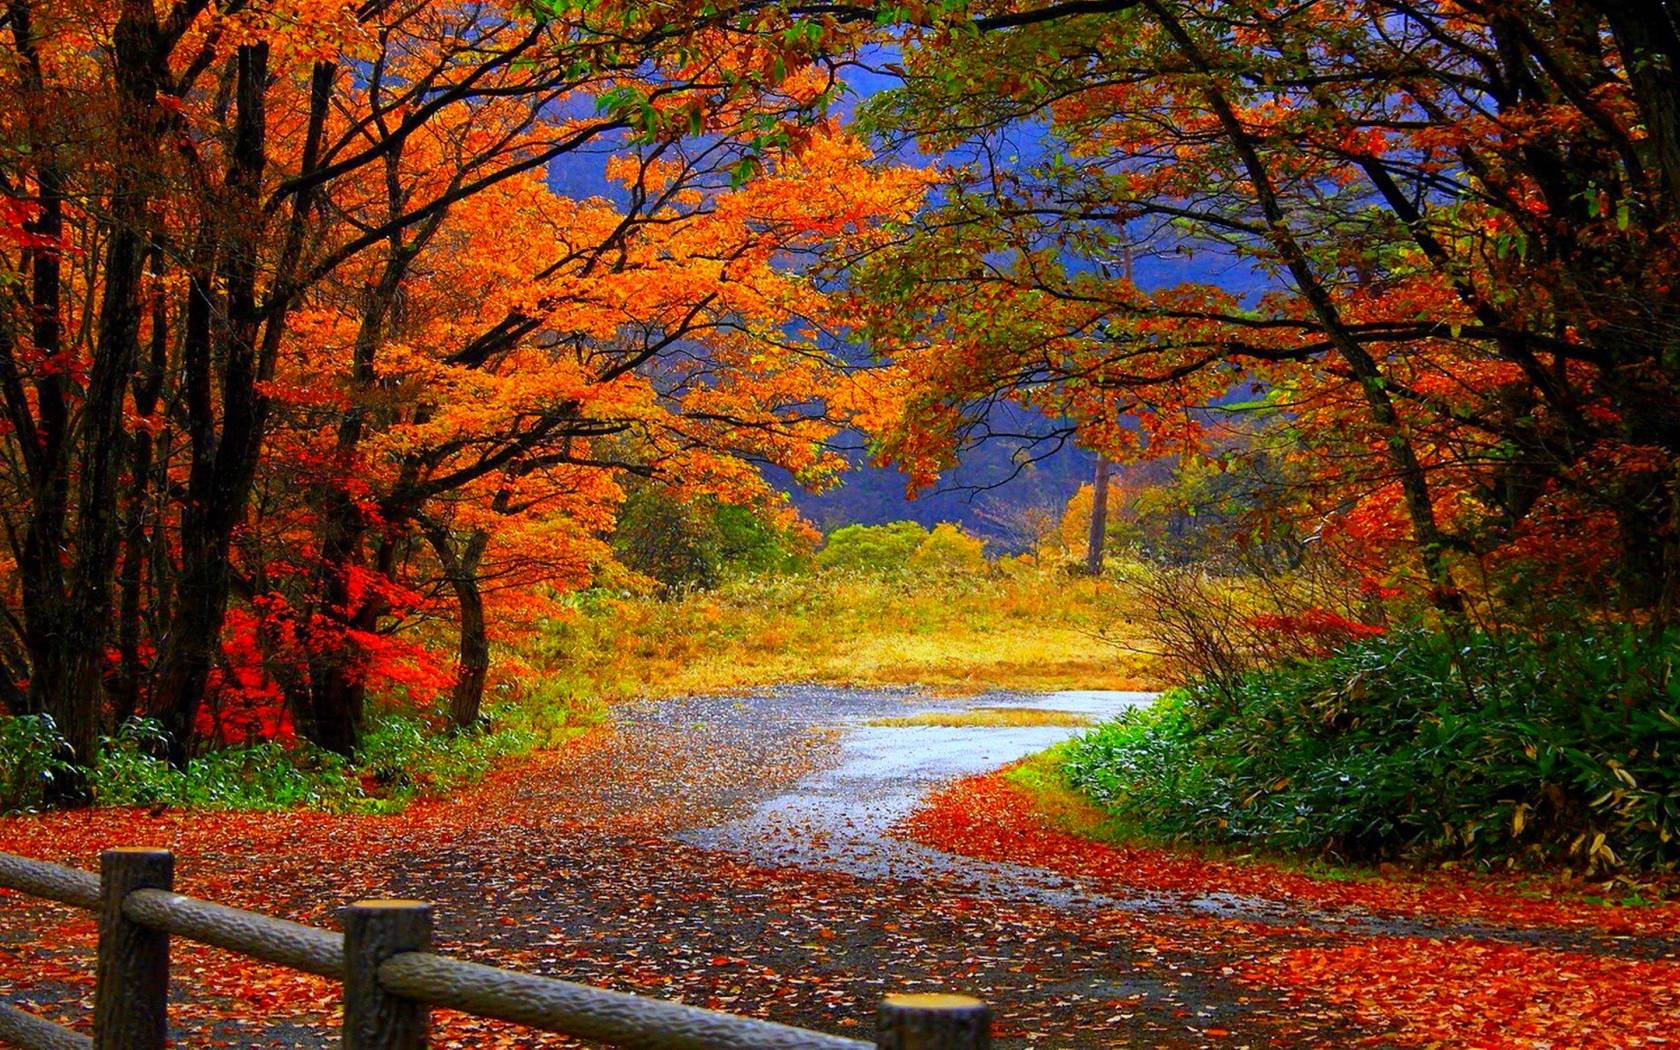 Falling Leaves Live Wallpaper Top 6 Android Autumn Live Wallpapers To Enjoy Falling Leaves